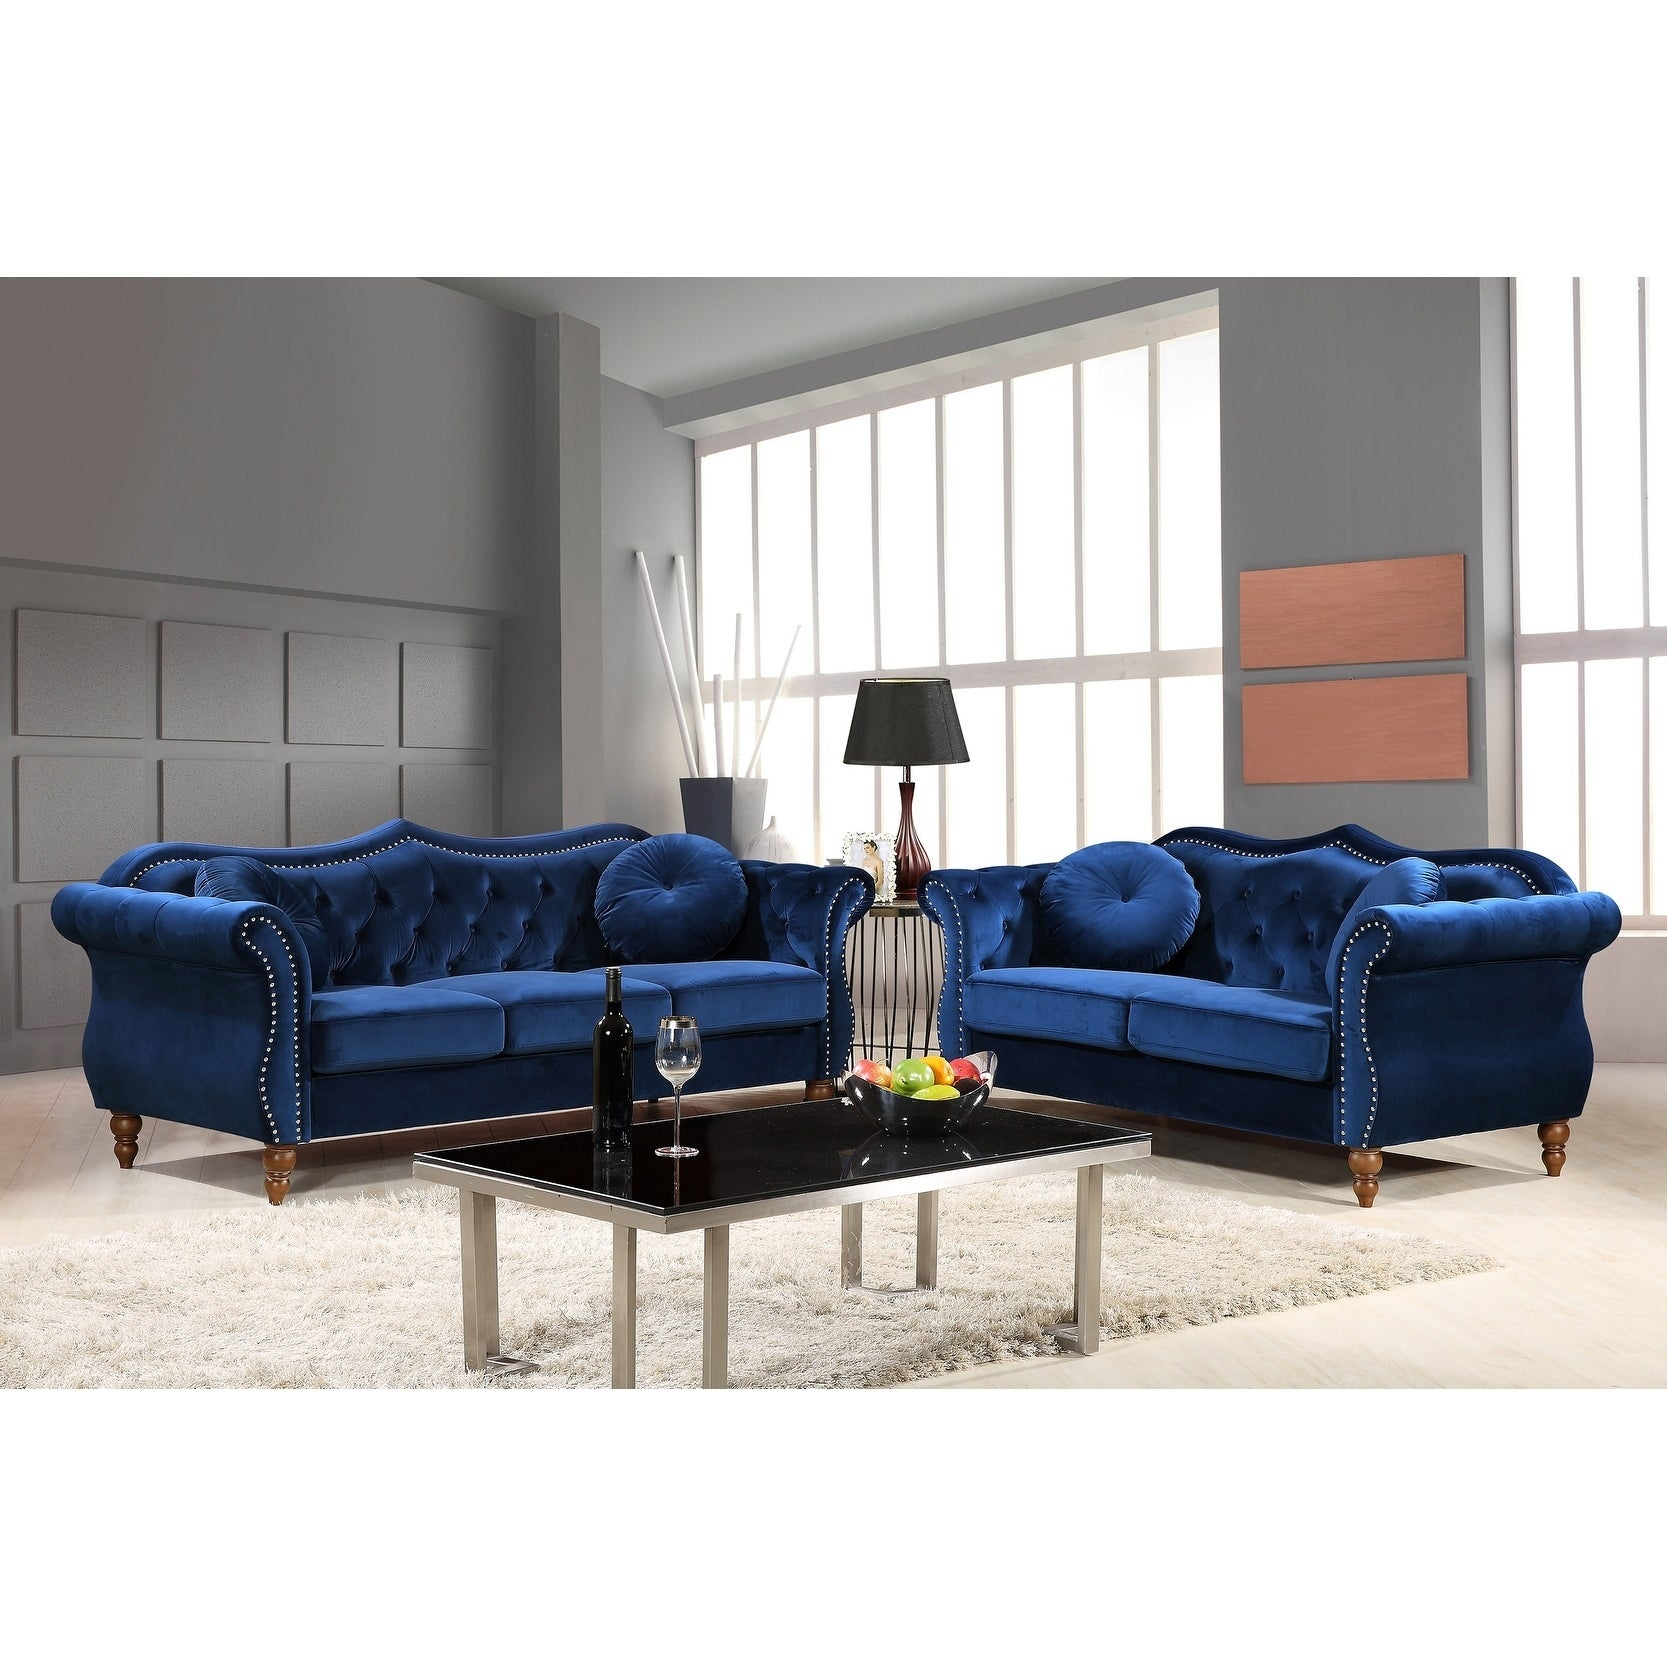 Fine Gracewood Hollow Mantel Mid Century Nailhead Chesterfield Sofa Set Pabps2019 Chair Design Images Pabps2019Com